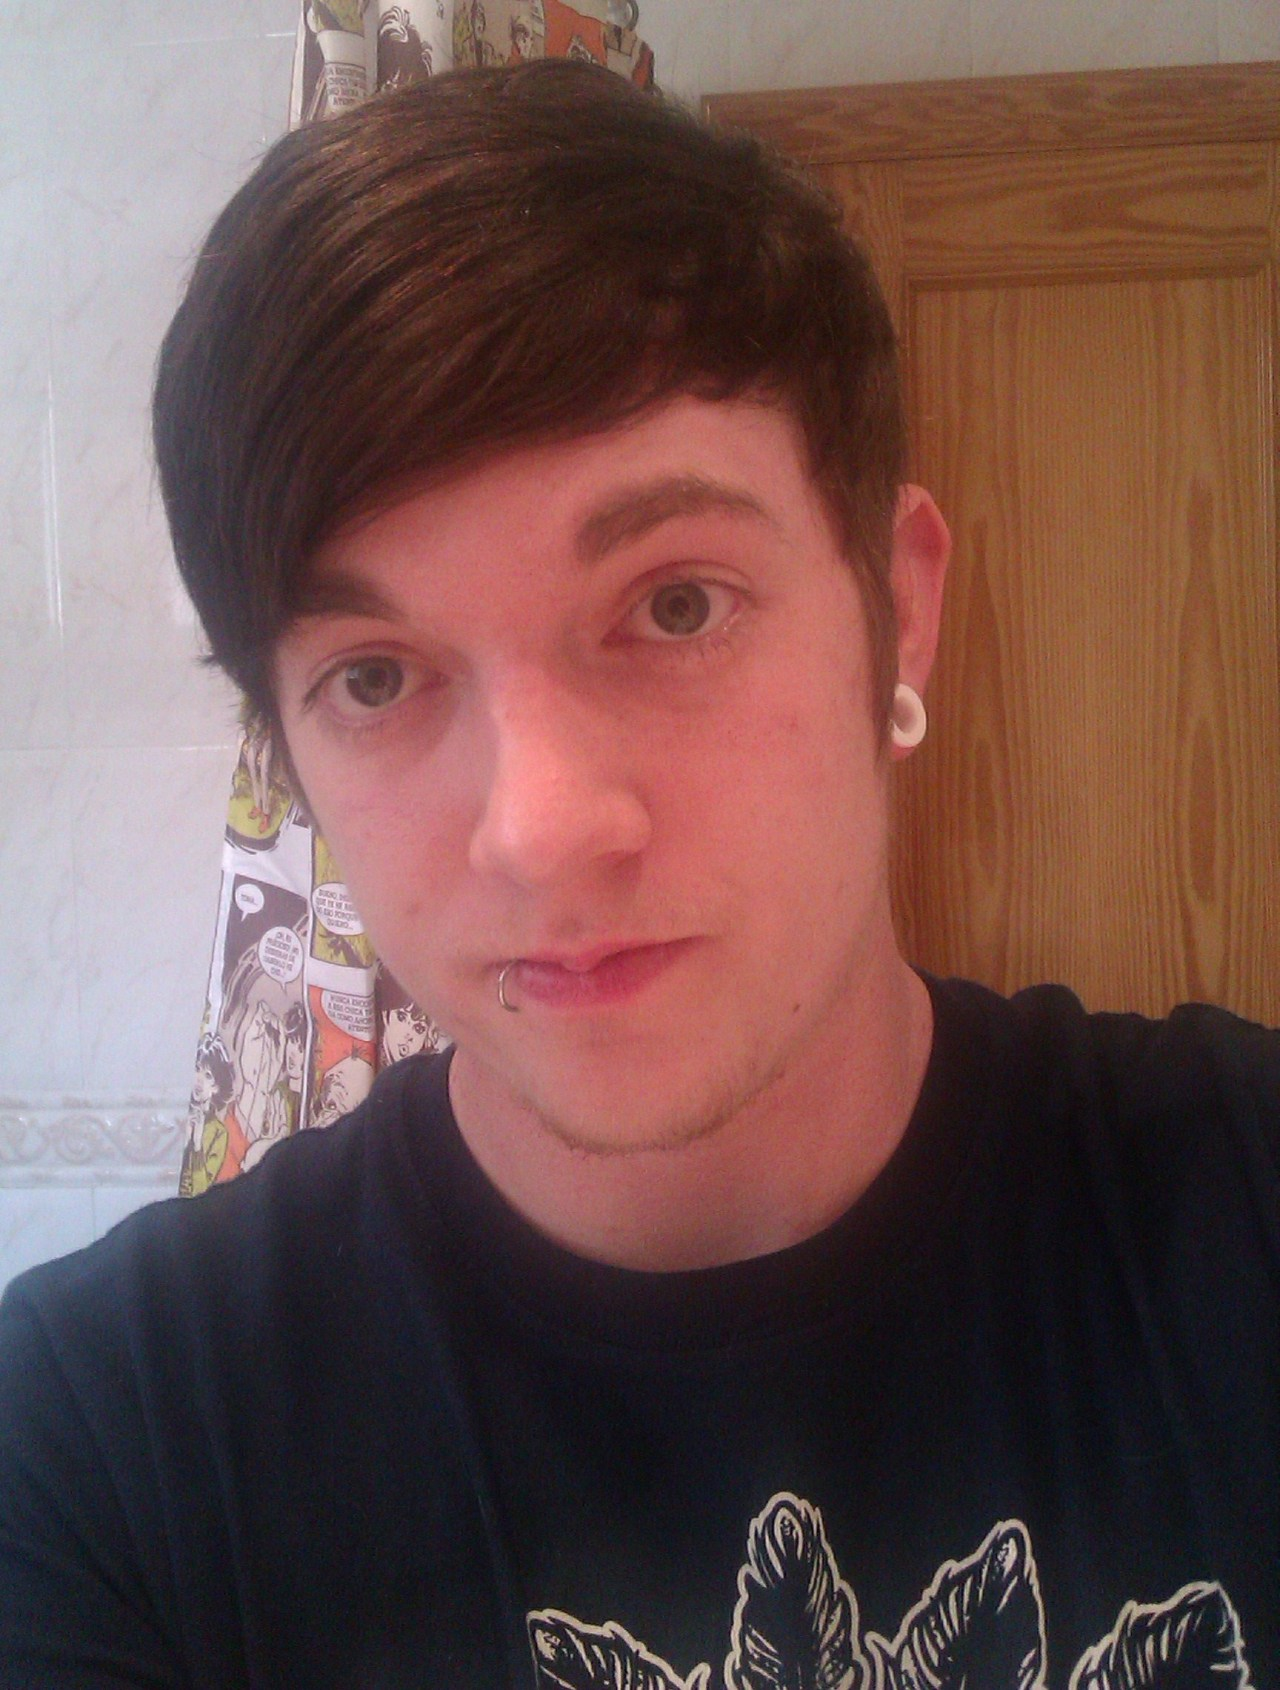 Not sure if I like this photo but had a haircut.